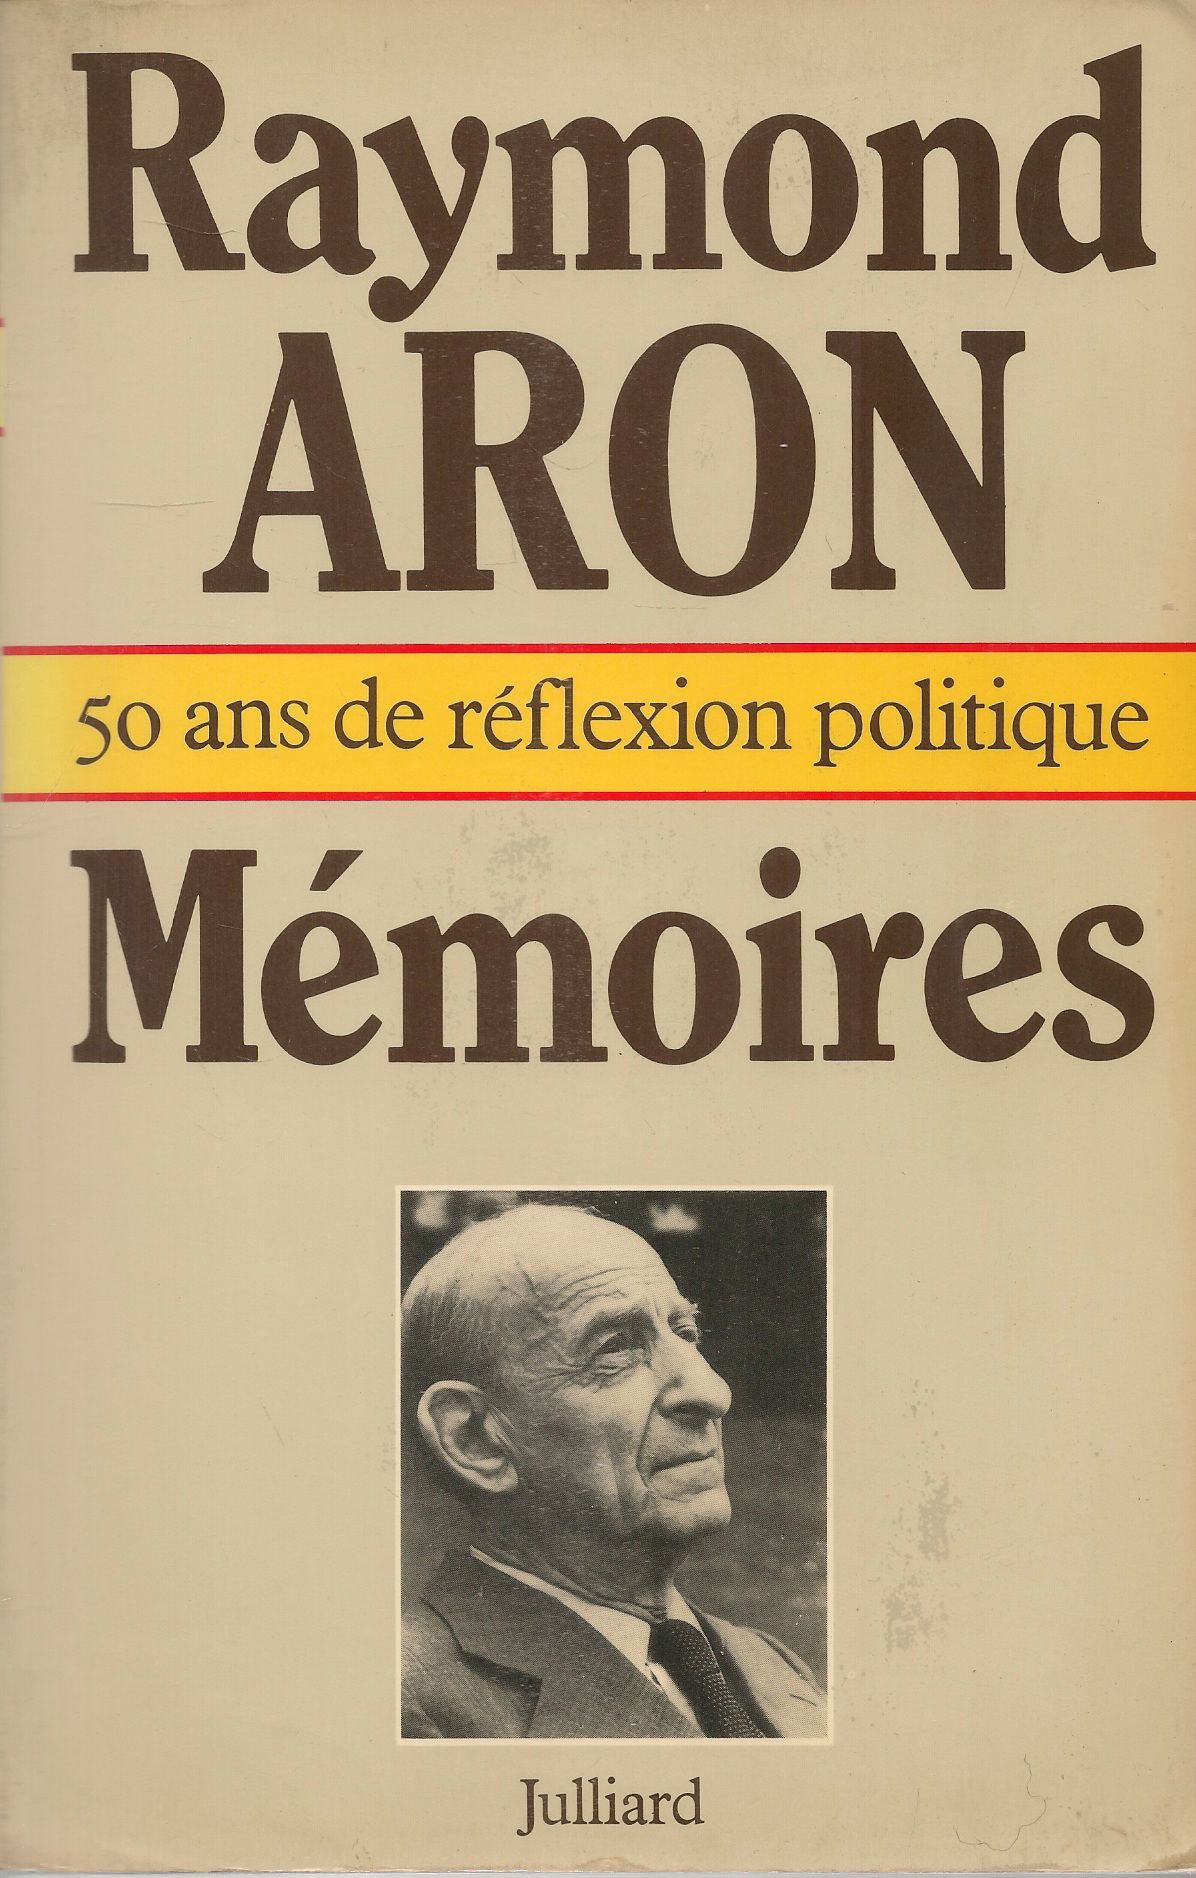 MEMOIRES - RAYMOND ARON - FRENCH TEXT